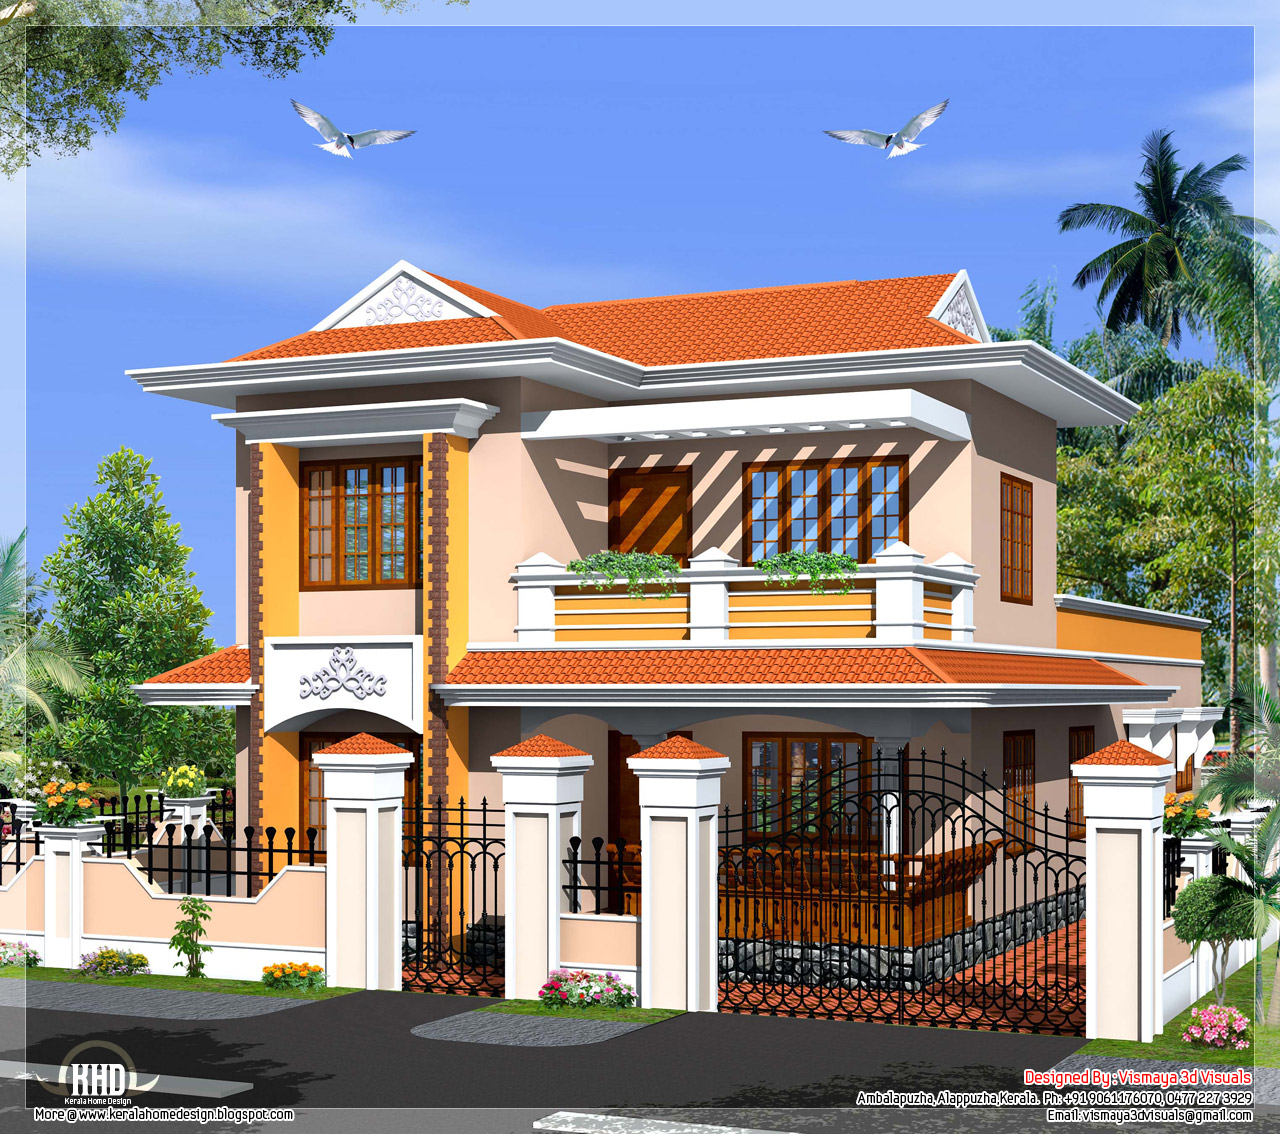 Kerala model villa in 2110 in square feet house design plans for Latest kerala model house plans